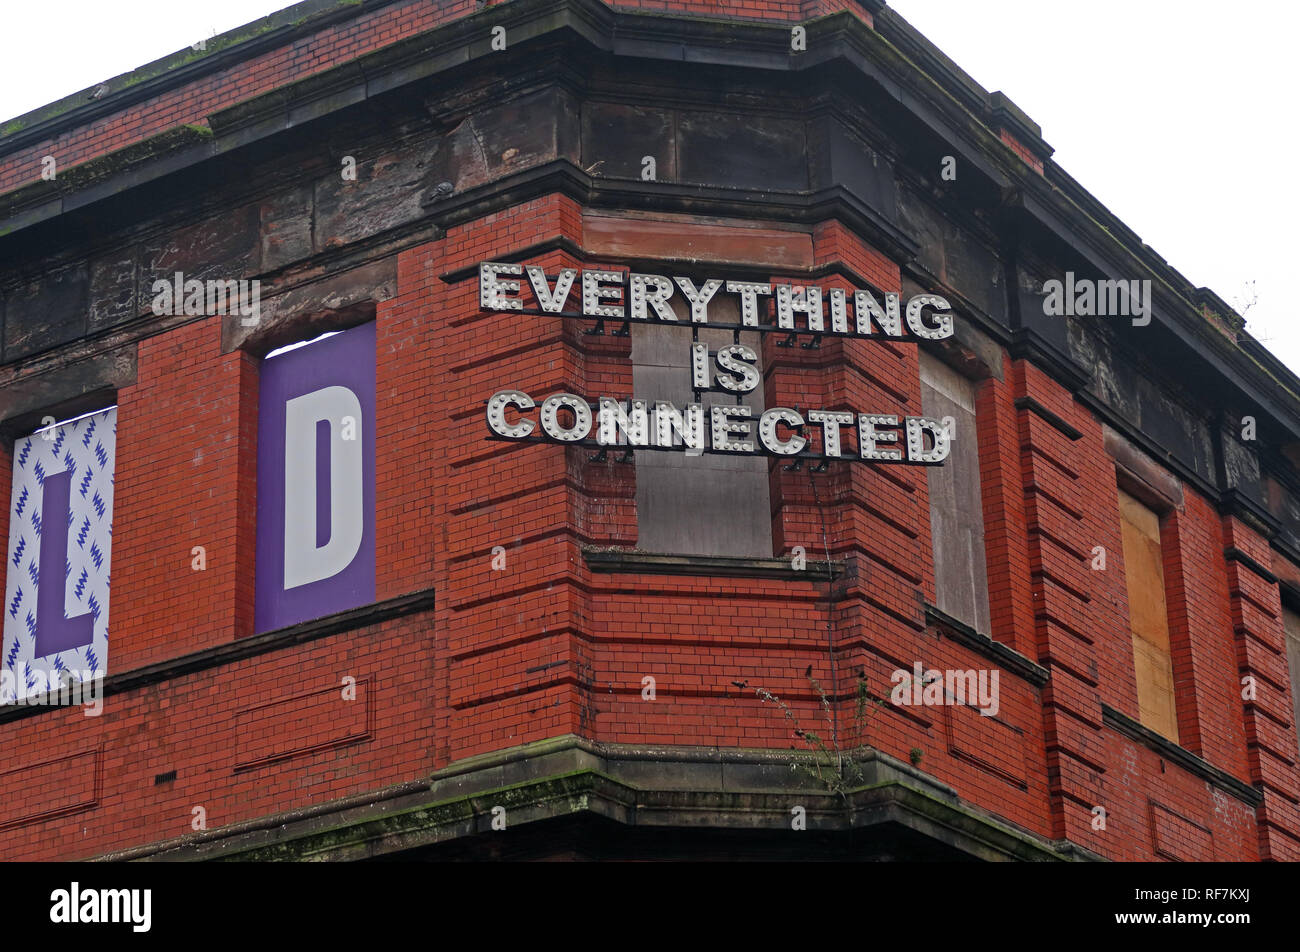 Manchester City Centre,Manchester,City Centre,city,NQ,NQ4,Northern Quarter,North West,England,UK,GoTonySmith,HotpixUK,@HotpixUK,buildings,streets,Railway,sign,Everything Is Connected,Everything Is Connected sign,Fairfield St,Mayfield,history,brick,station,scheme,proposed,development,schemes,poster,posters,property,London and Continental Railways,London & Continental Railways,LNWR,London Midland,Goods Station,disused,Square One development,Square One,Prime Suspect drug dealers haunt